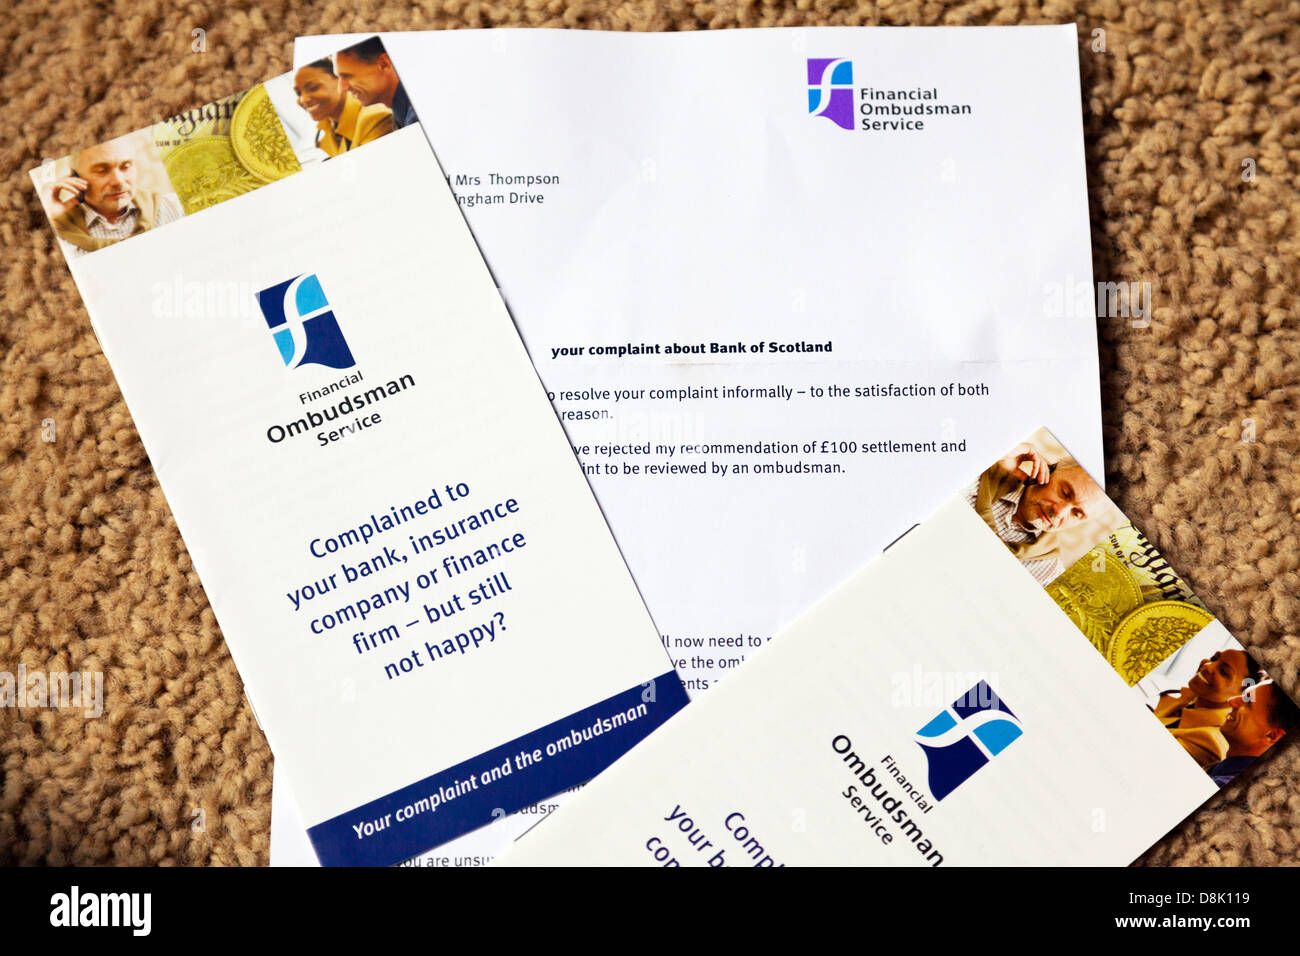 Halifax Ppi Claims >> Letter From The Financial Ombudsman Regards Ppi Claim